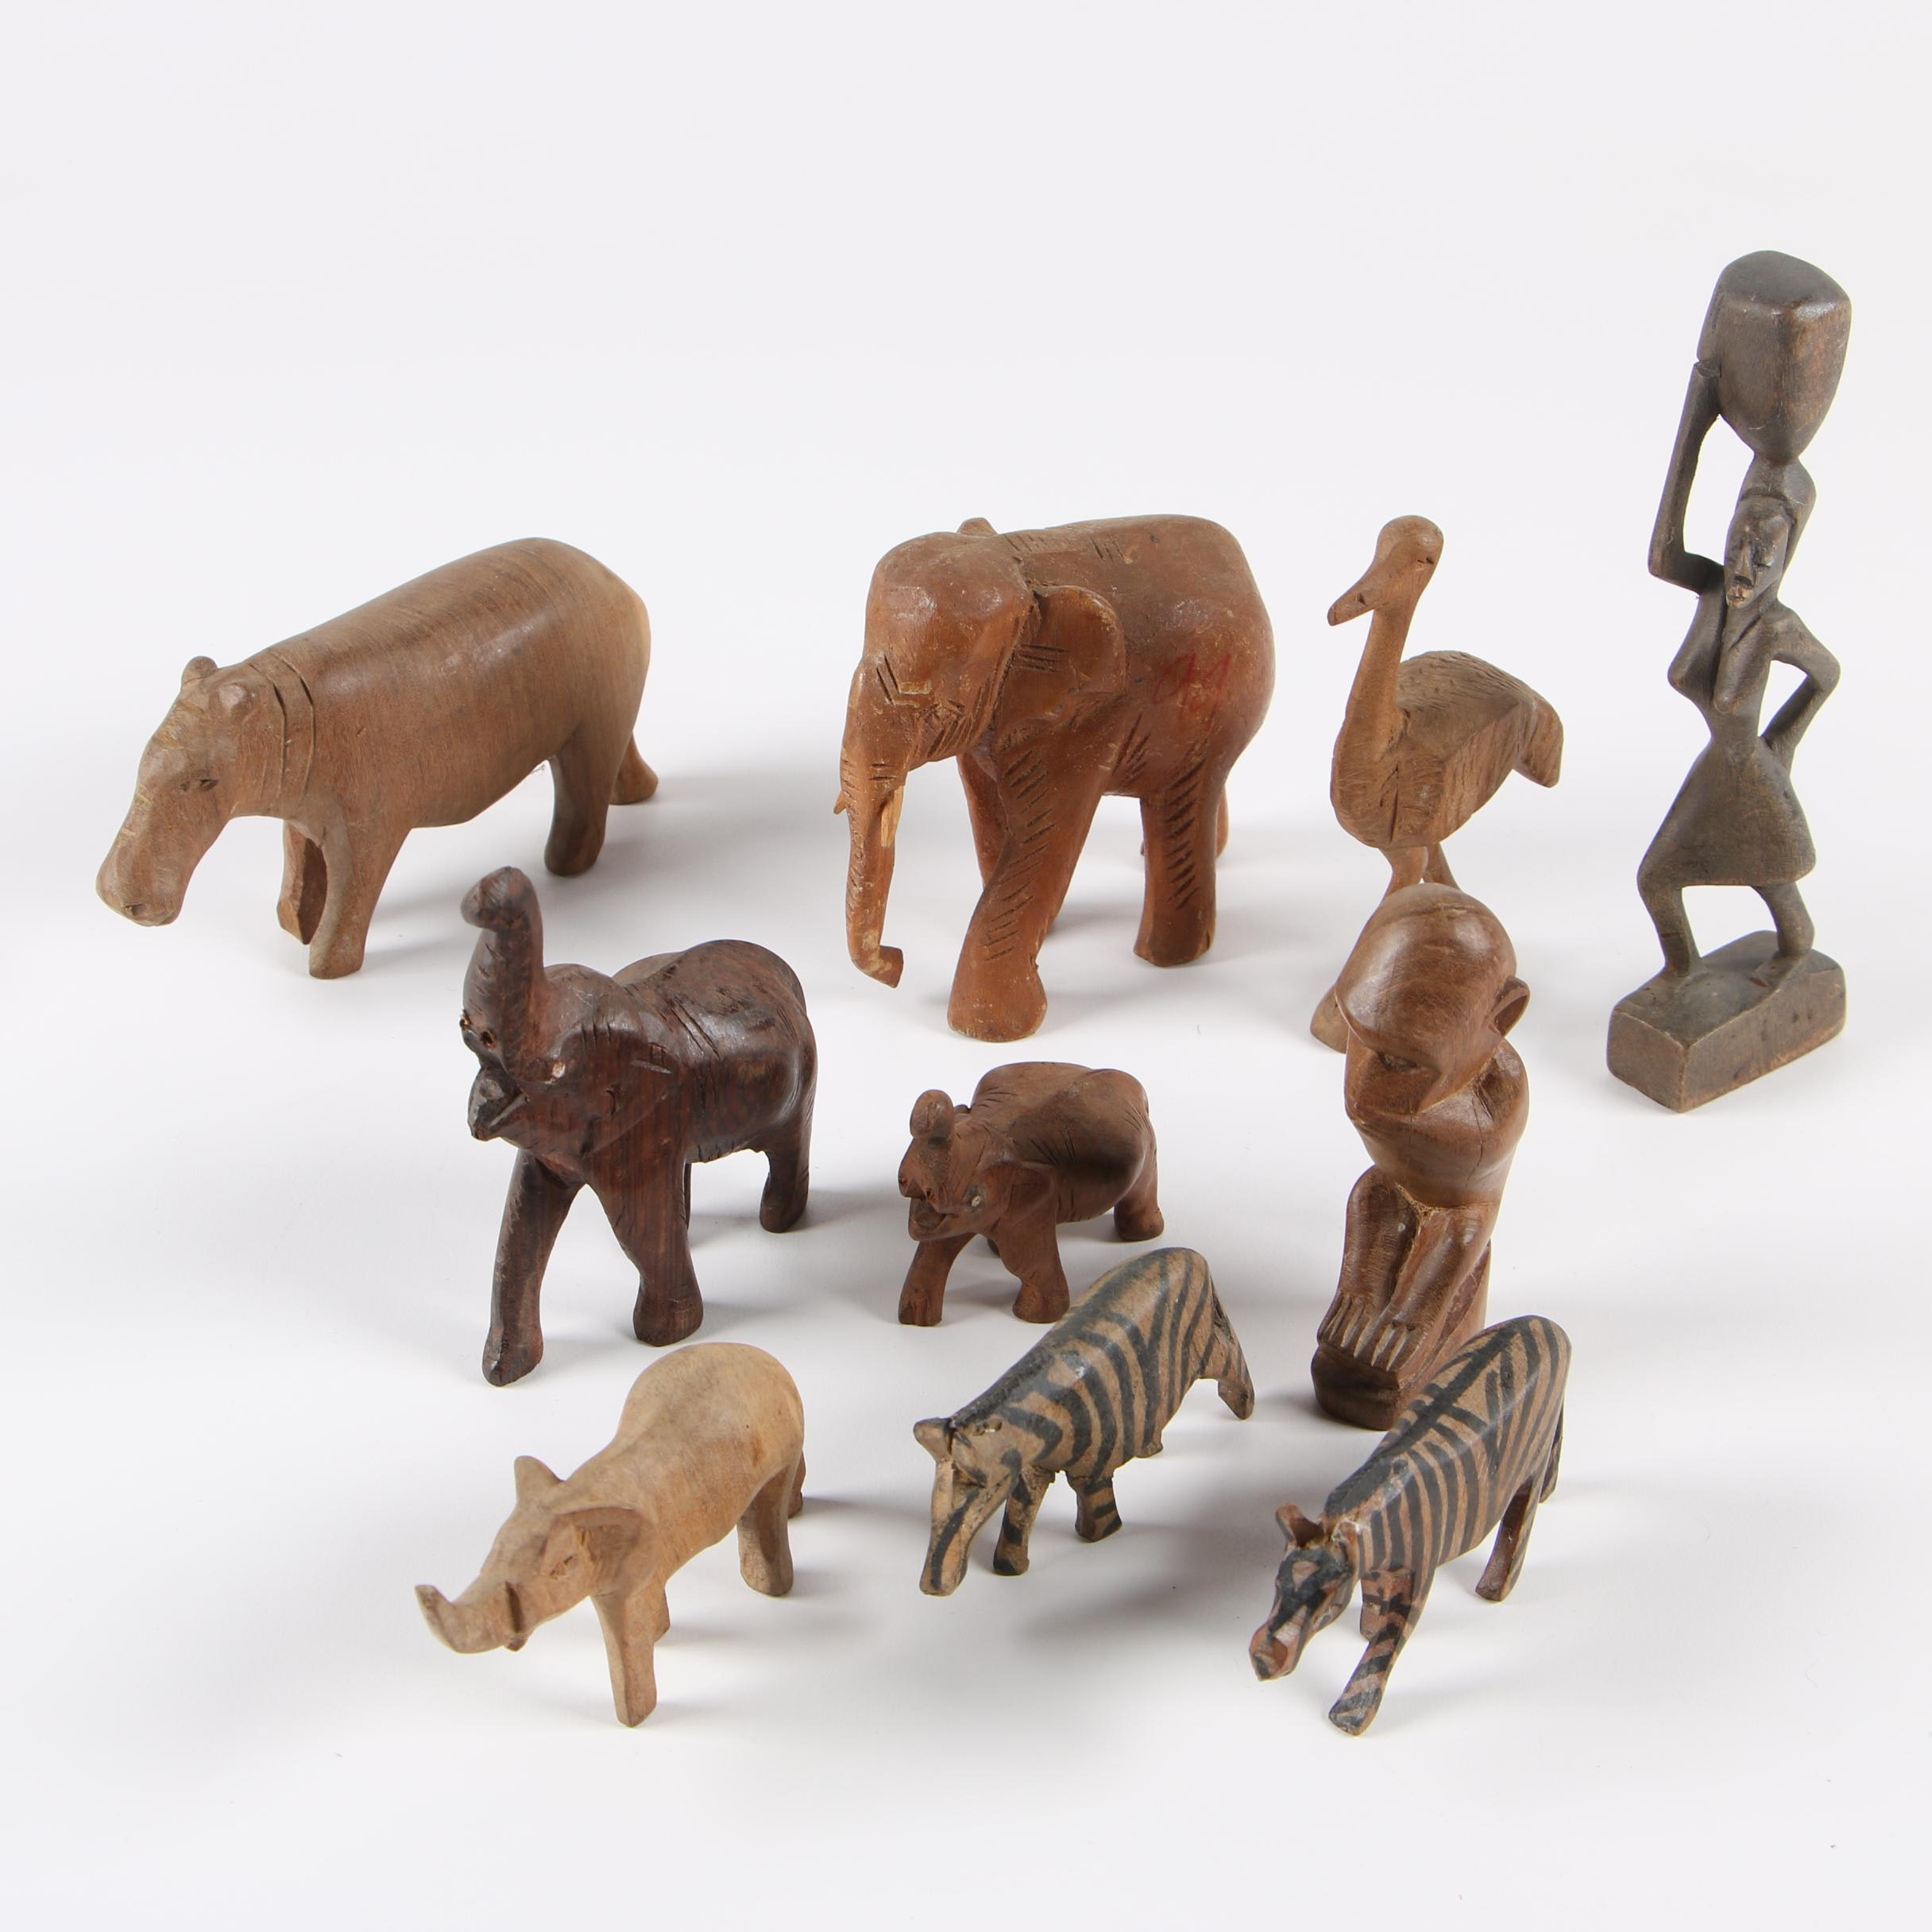 Carved Wood Figurines featuring African Animals